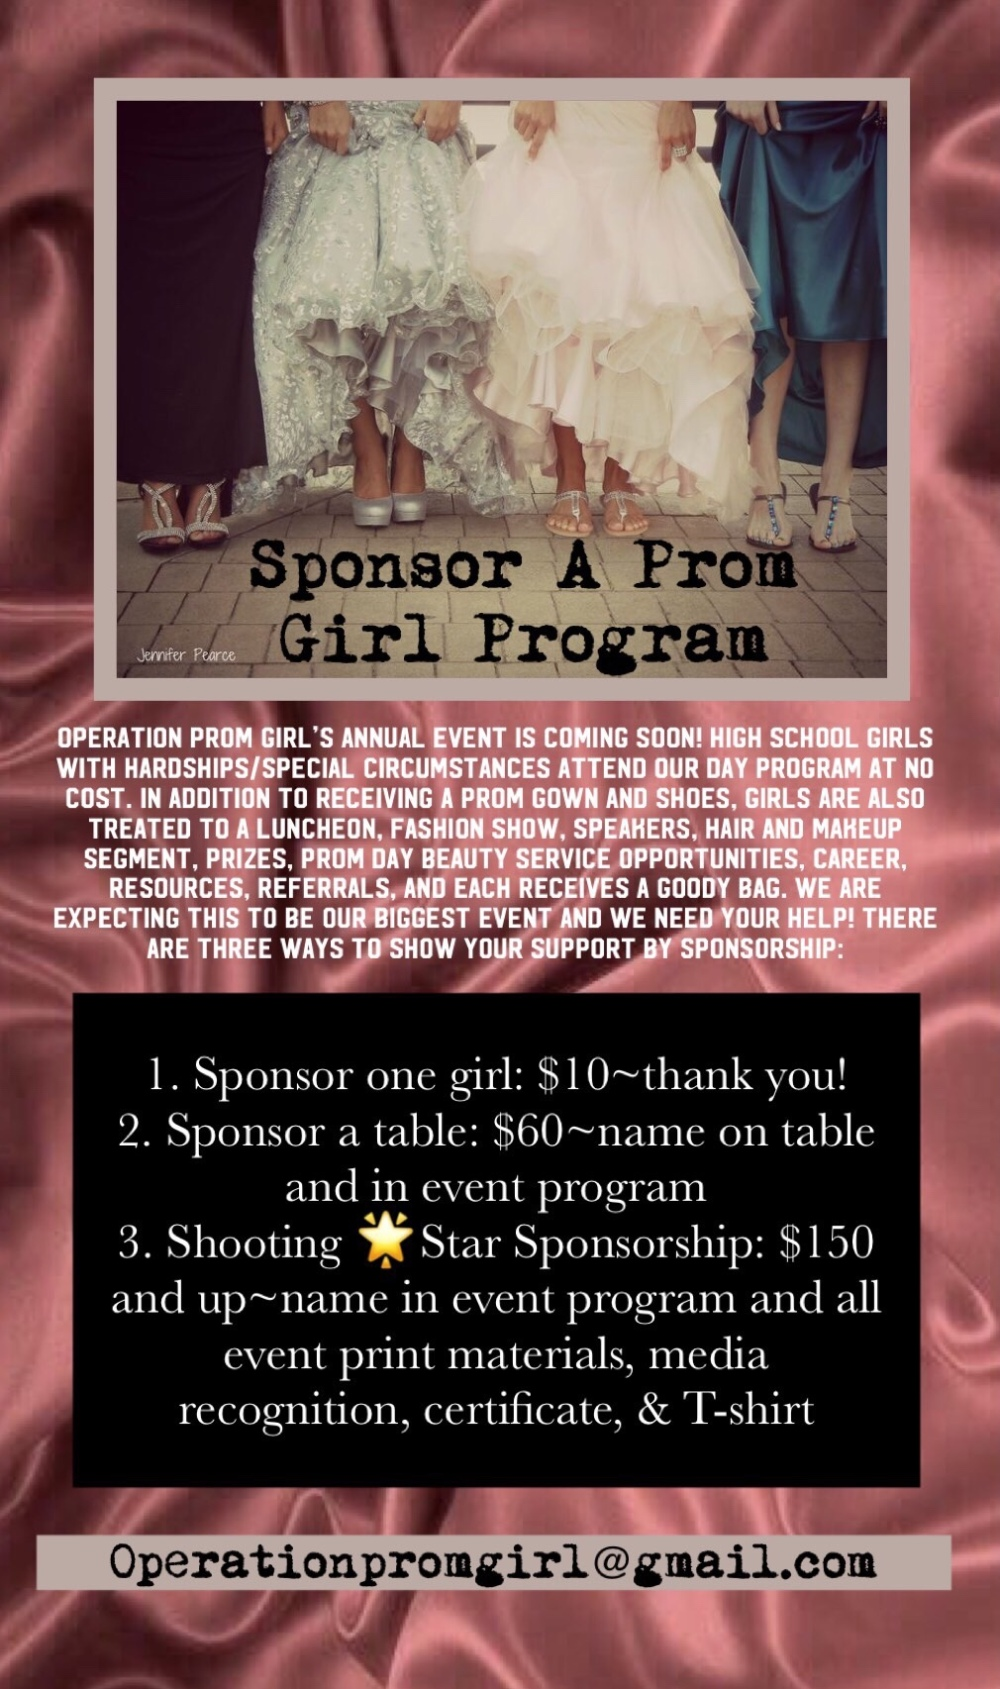 4bfc737df623 2019 Sponsorship Opportunities – OPERATION PROM GIRL